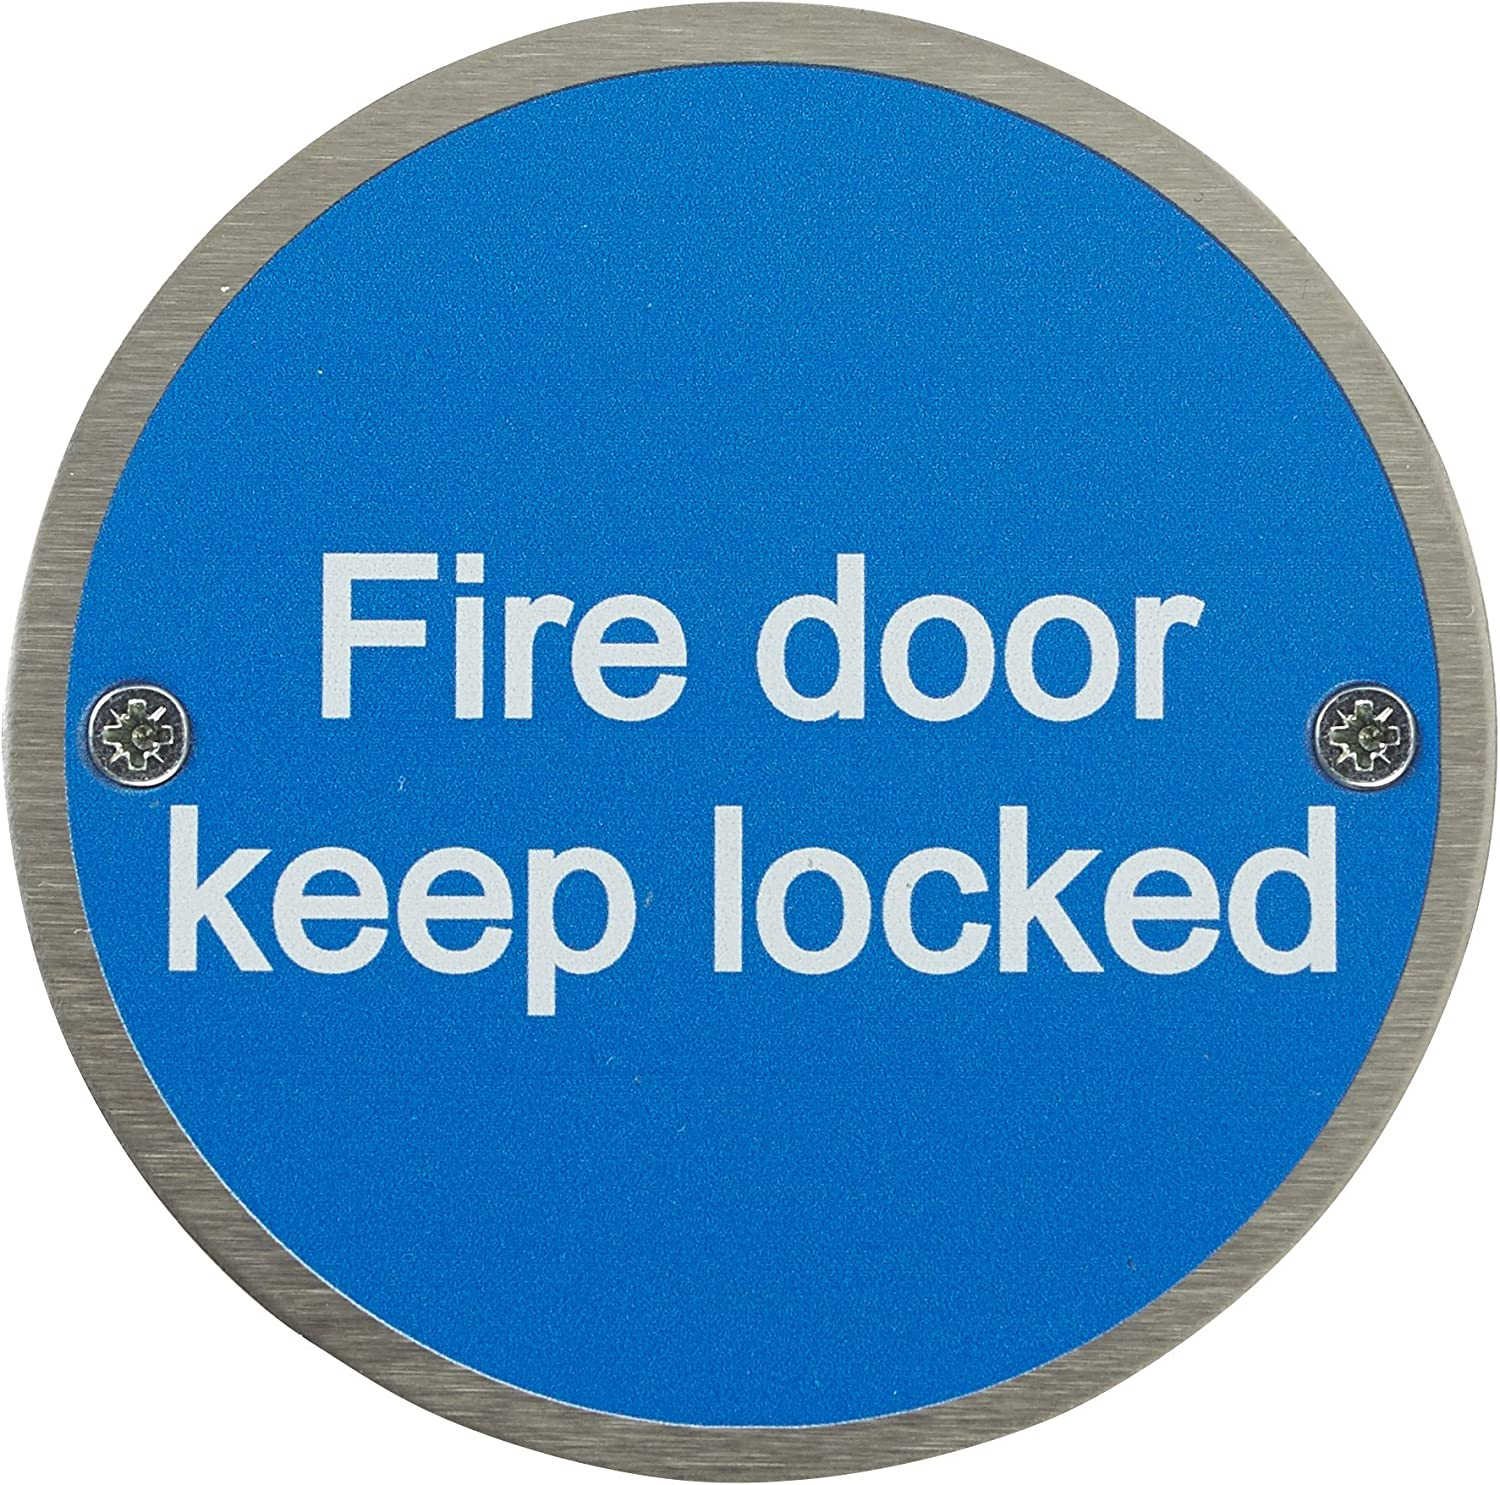 76mm Disc Stainless Steel Safety Sign Fire Door Guru/® Pack of 20 Fire Door Keep Locked Sign Fixings Included